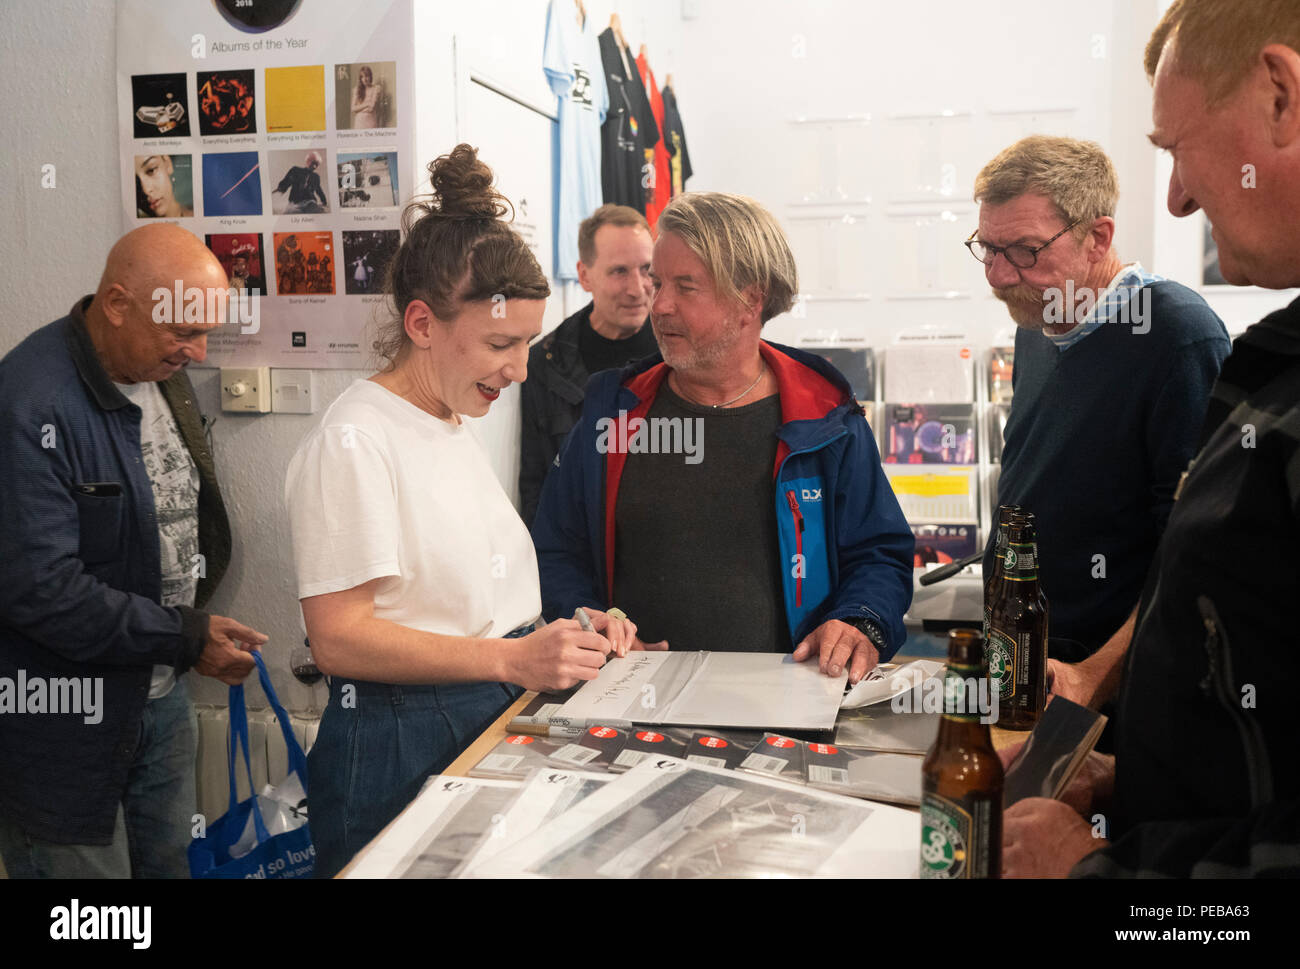 Edinburgh, Scotland. 13th August, 2018. Kathryn Joseph performs tracks from her new album 'From When I Wake The Want Is' at Assai Records in Edinburgh. Credit: Ben Collins/Alamy Live News Stock Photo